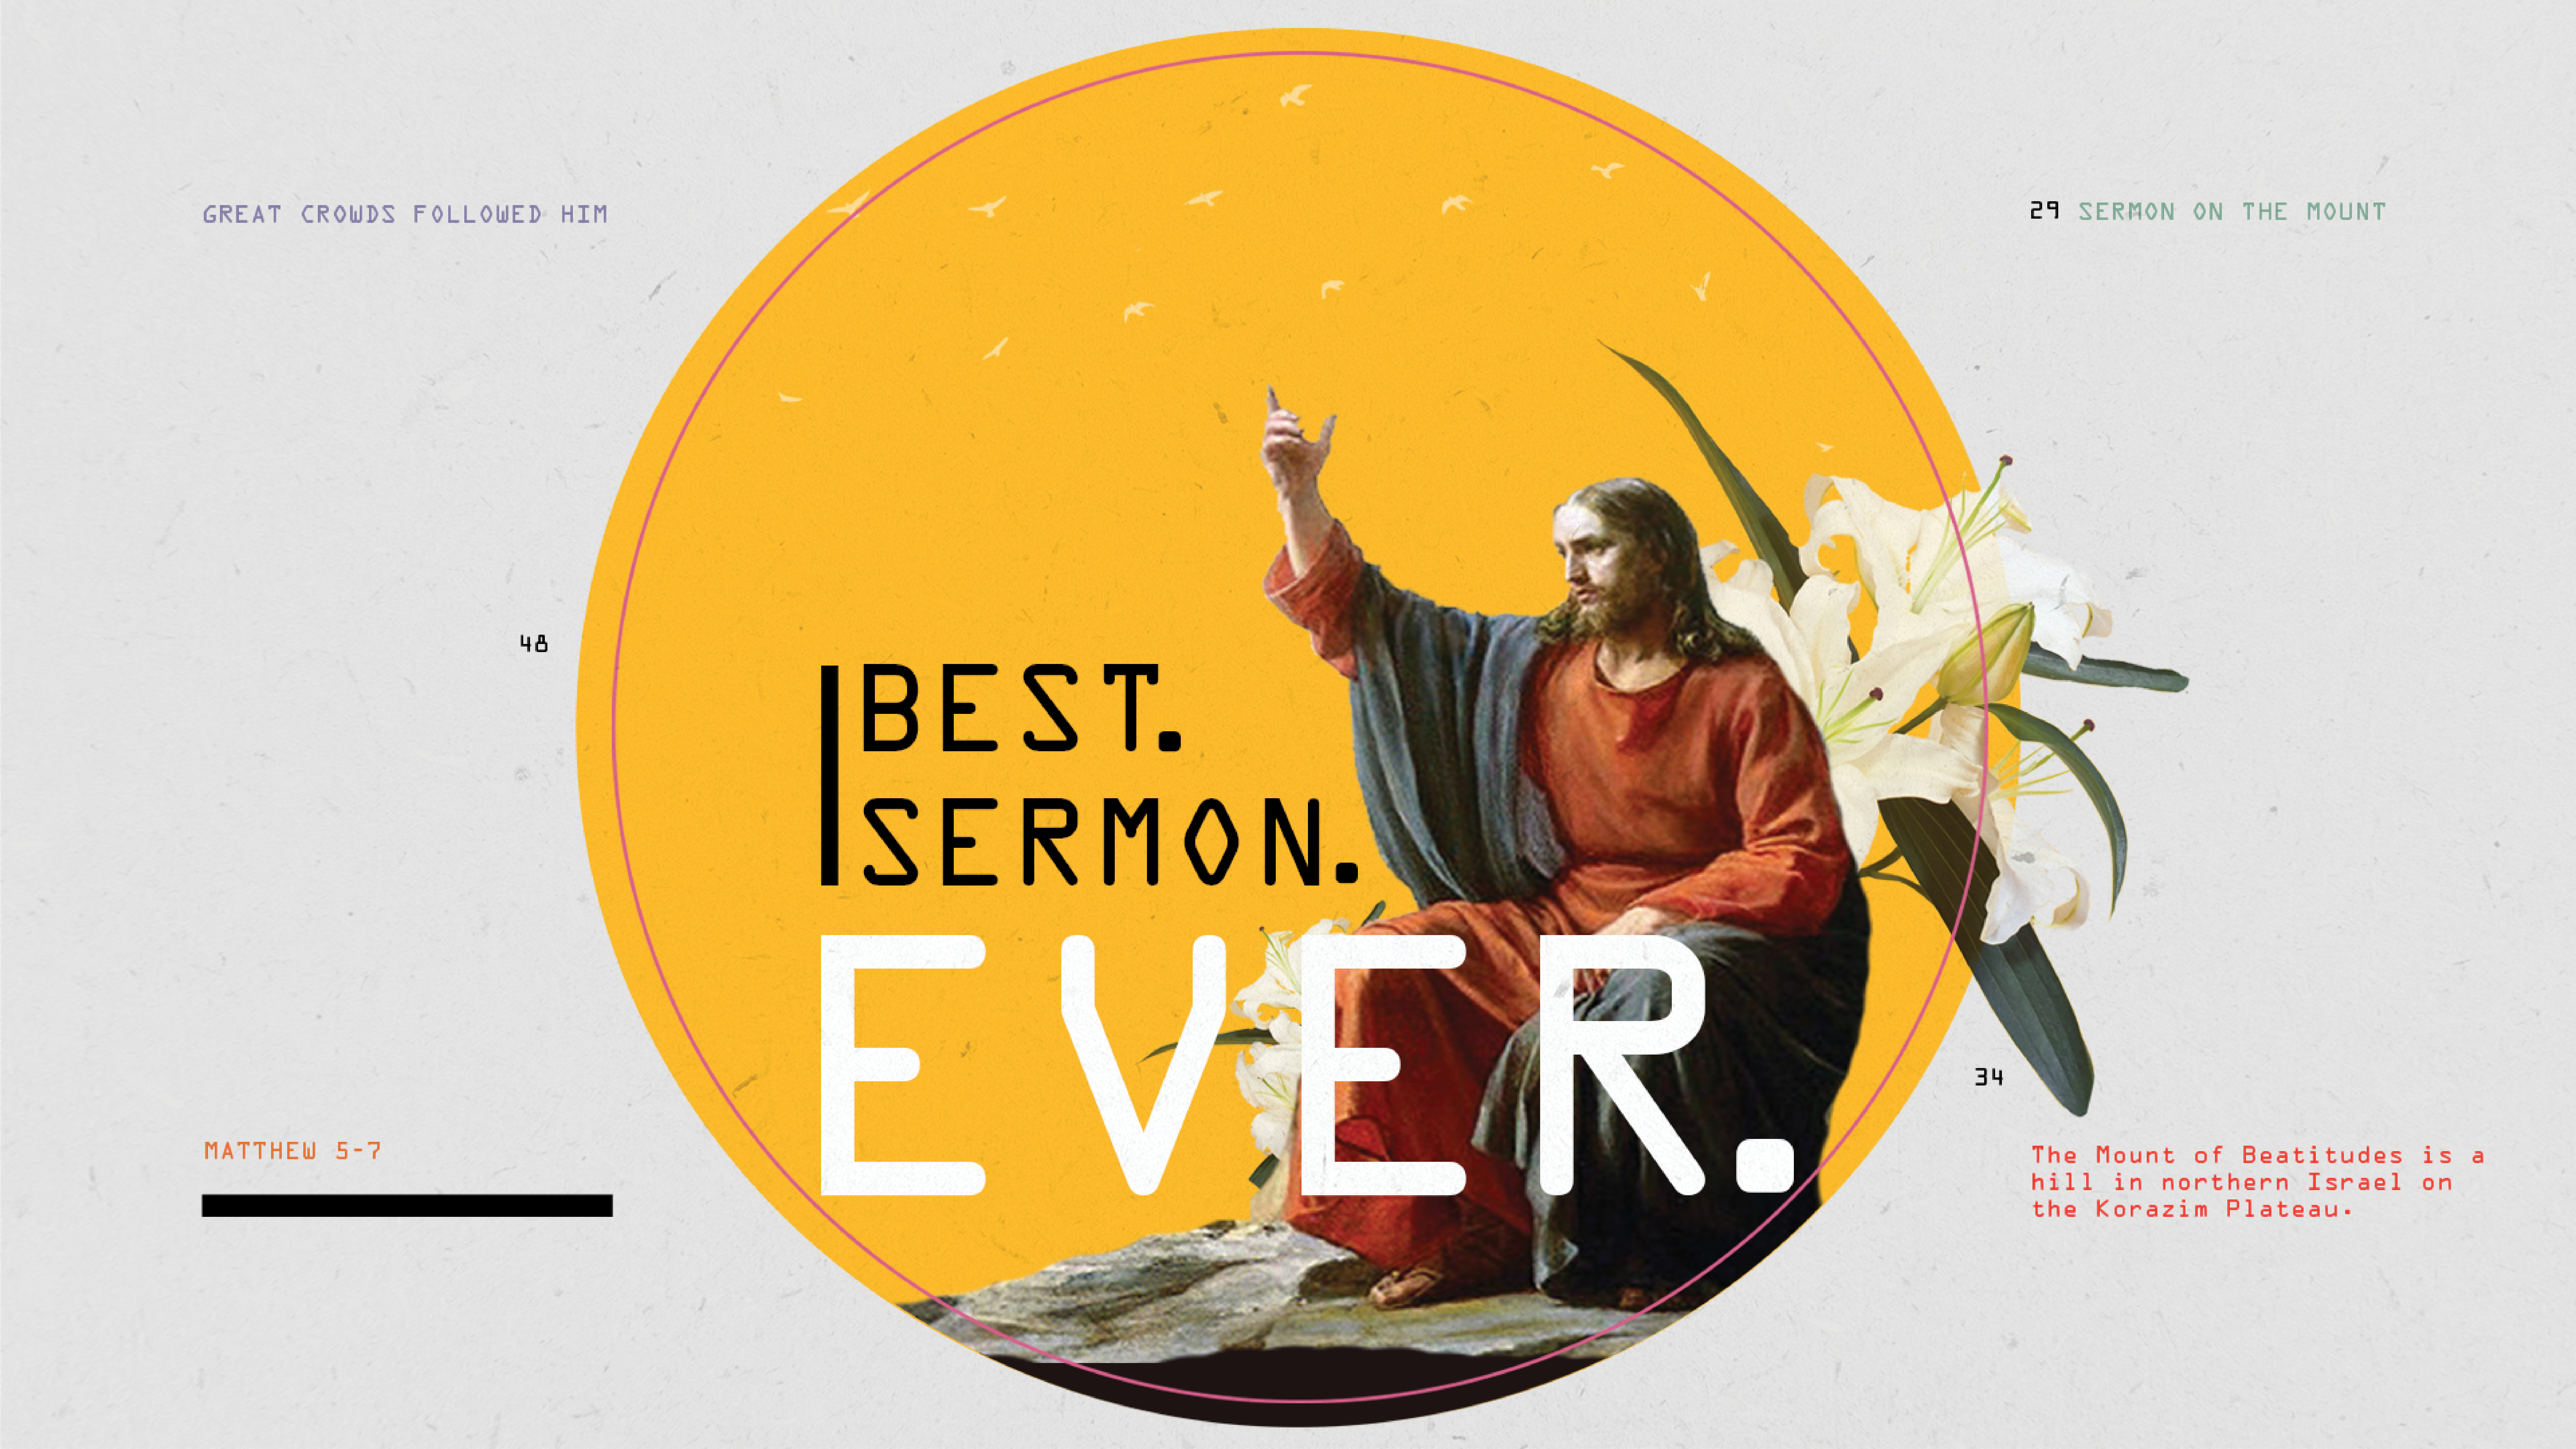 Best. Sermon. Ever. - Week 11: Prayer